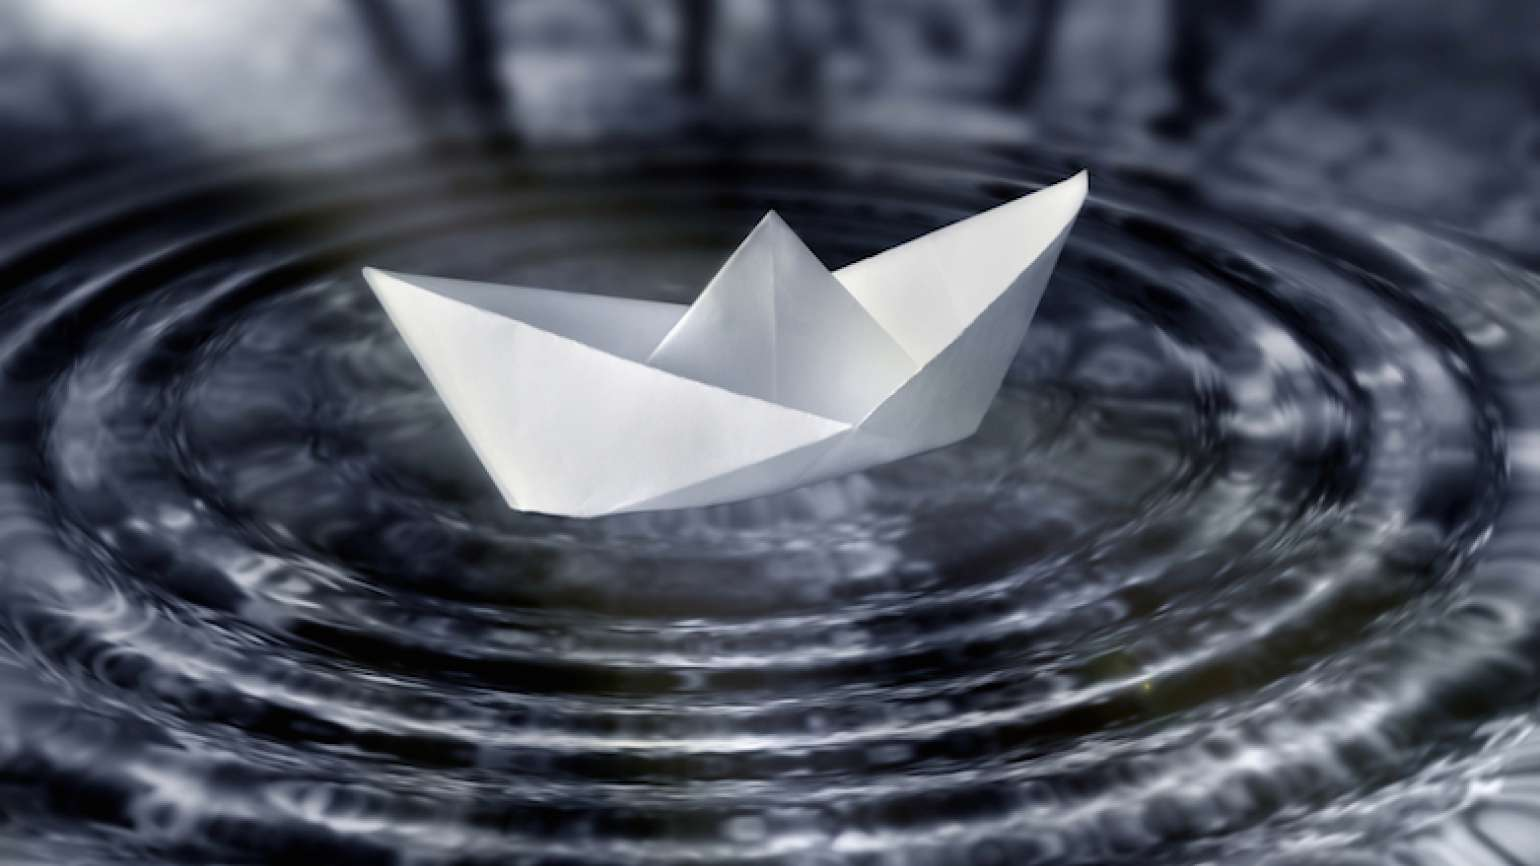 Miracles have a ripple effect. Photo Mikael Damkier, Shutterstock.